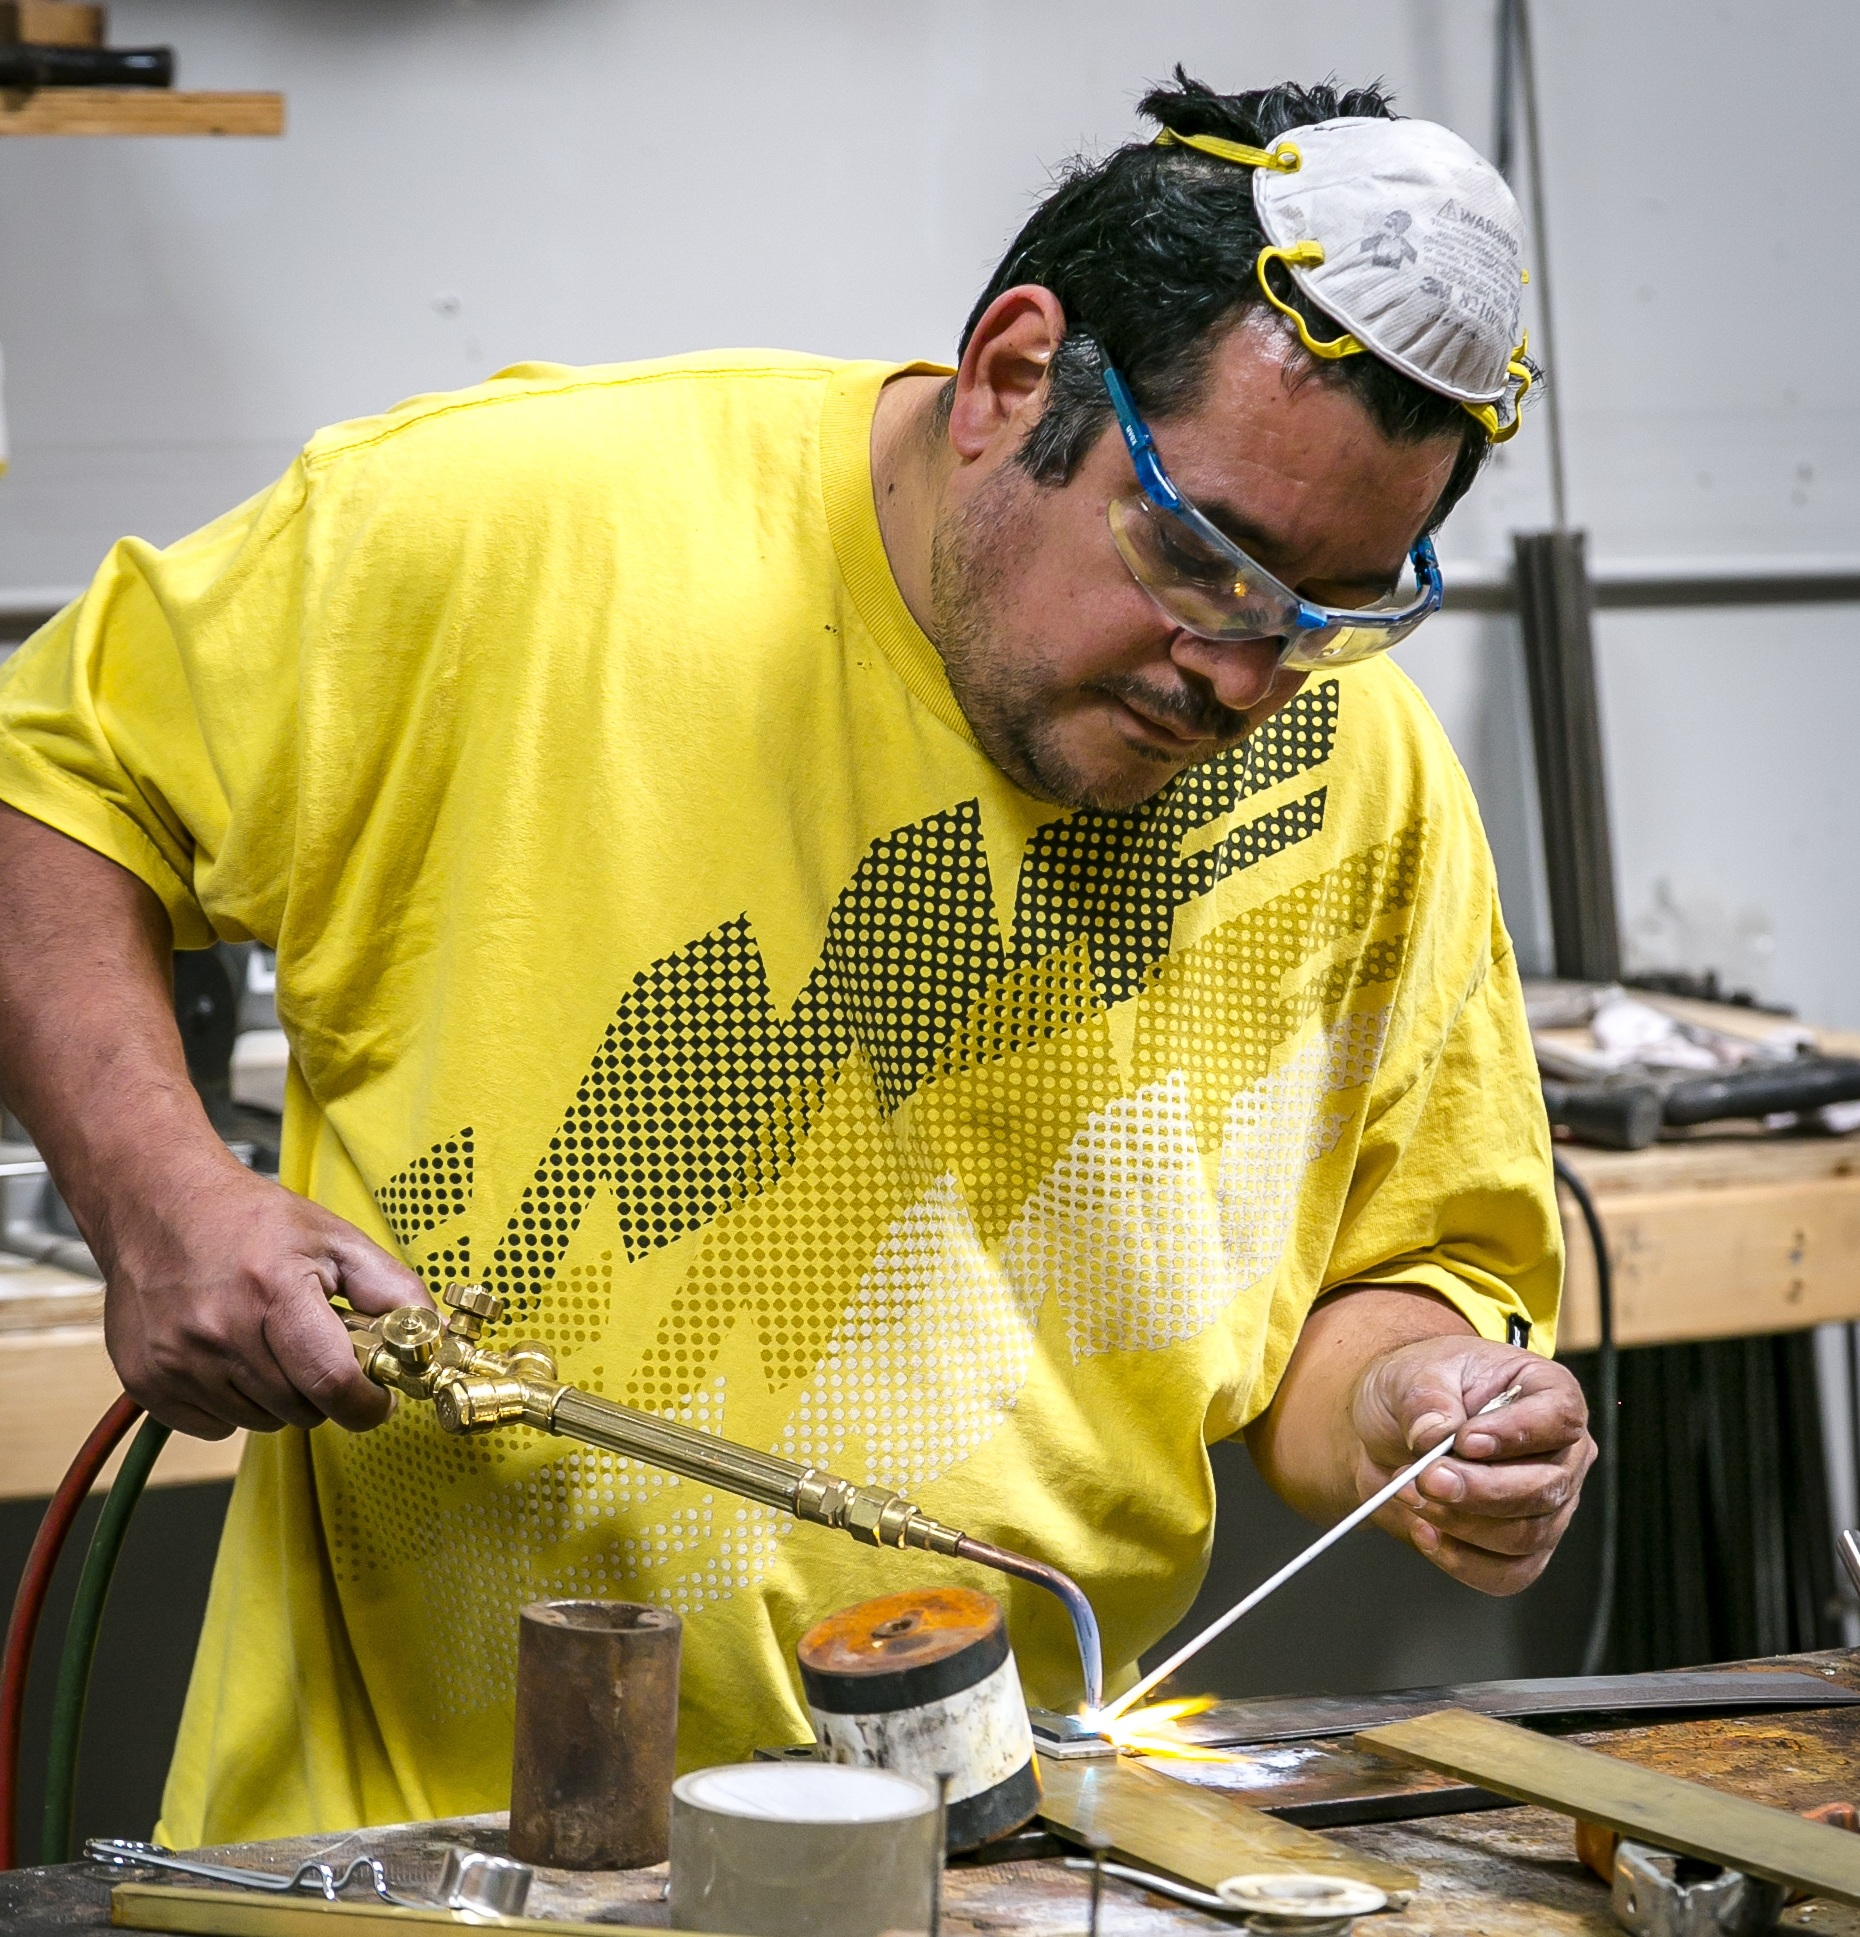 Ronald Orellana   A key member to our team, Ronald has had 17 years of lighting restoration experience and has been with dogfork for 10 years. He is extremely skilled at halogen, LED and fluorescent lighting along with incandescent wiring. Ronald also has a meticulously sound hand at drilling glass and ceramics along with the tricky art of brazing. His attentive ability to note the types and brands of quality parts that move through our shop helps us maintain our wide range of high-grade lighting parts. When Ronald is not at Dogfork he likes to relax at home and watch sports.